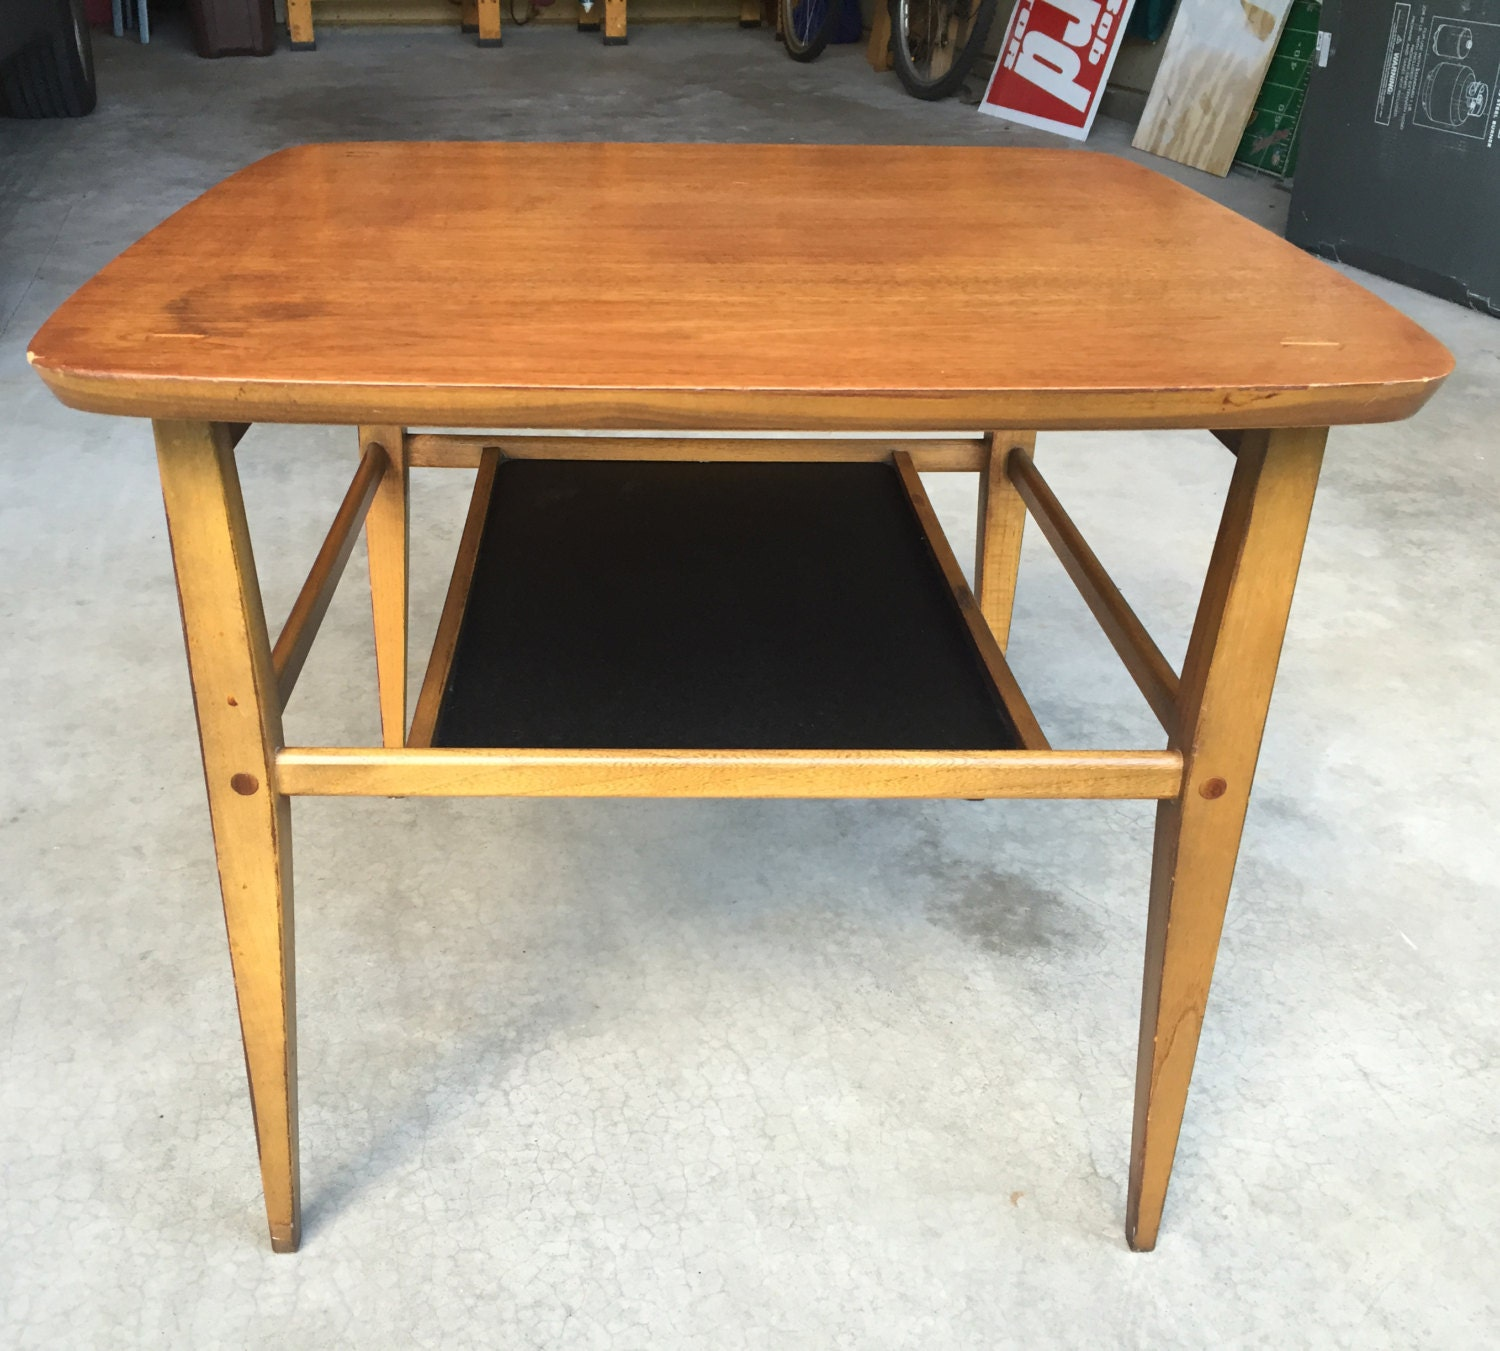 1950s Mid Century End Table By Lane Furniture: Mid Century Modern Side Table Lane Furniture Vintage Solid